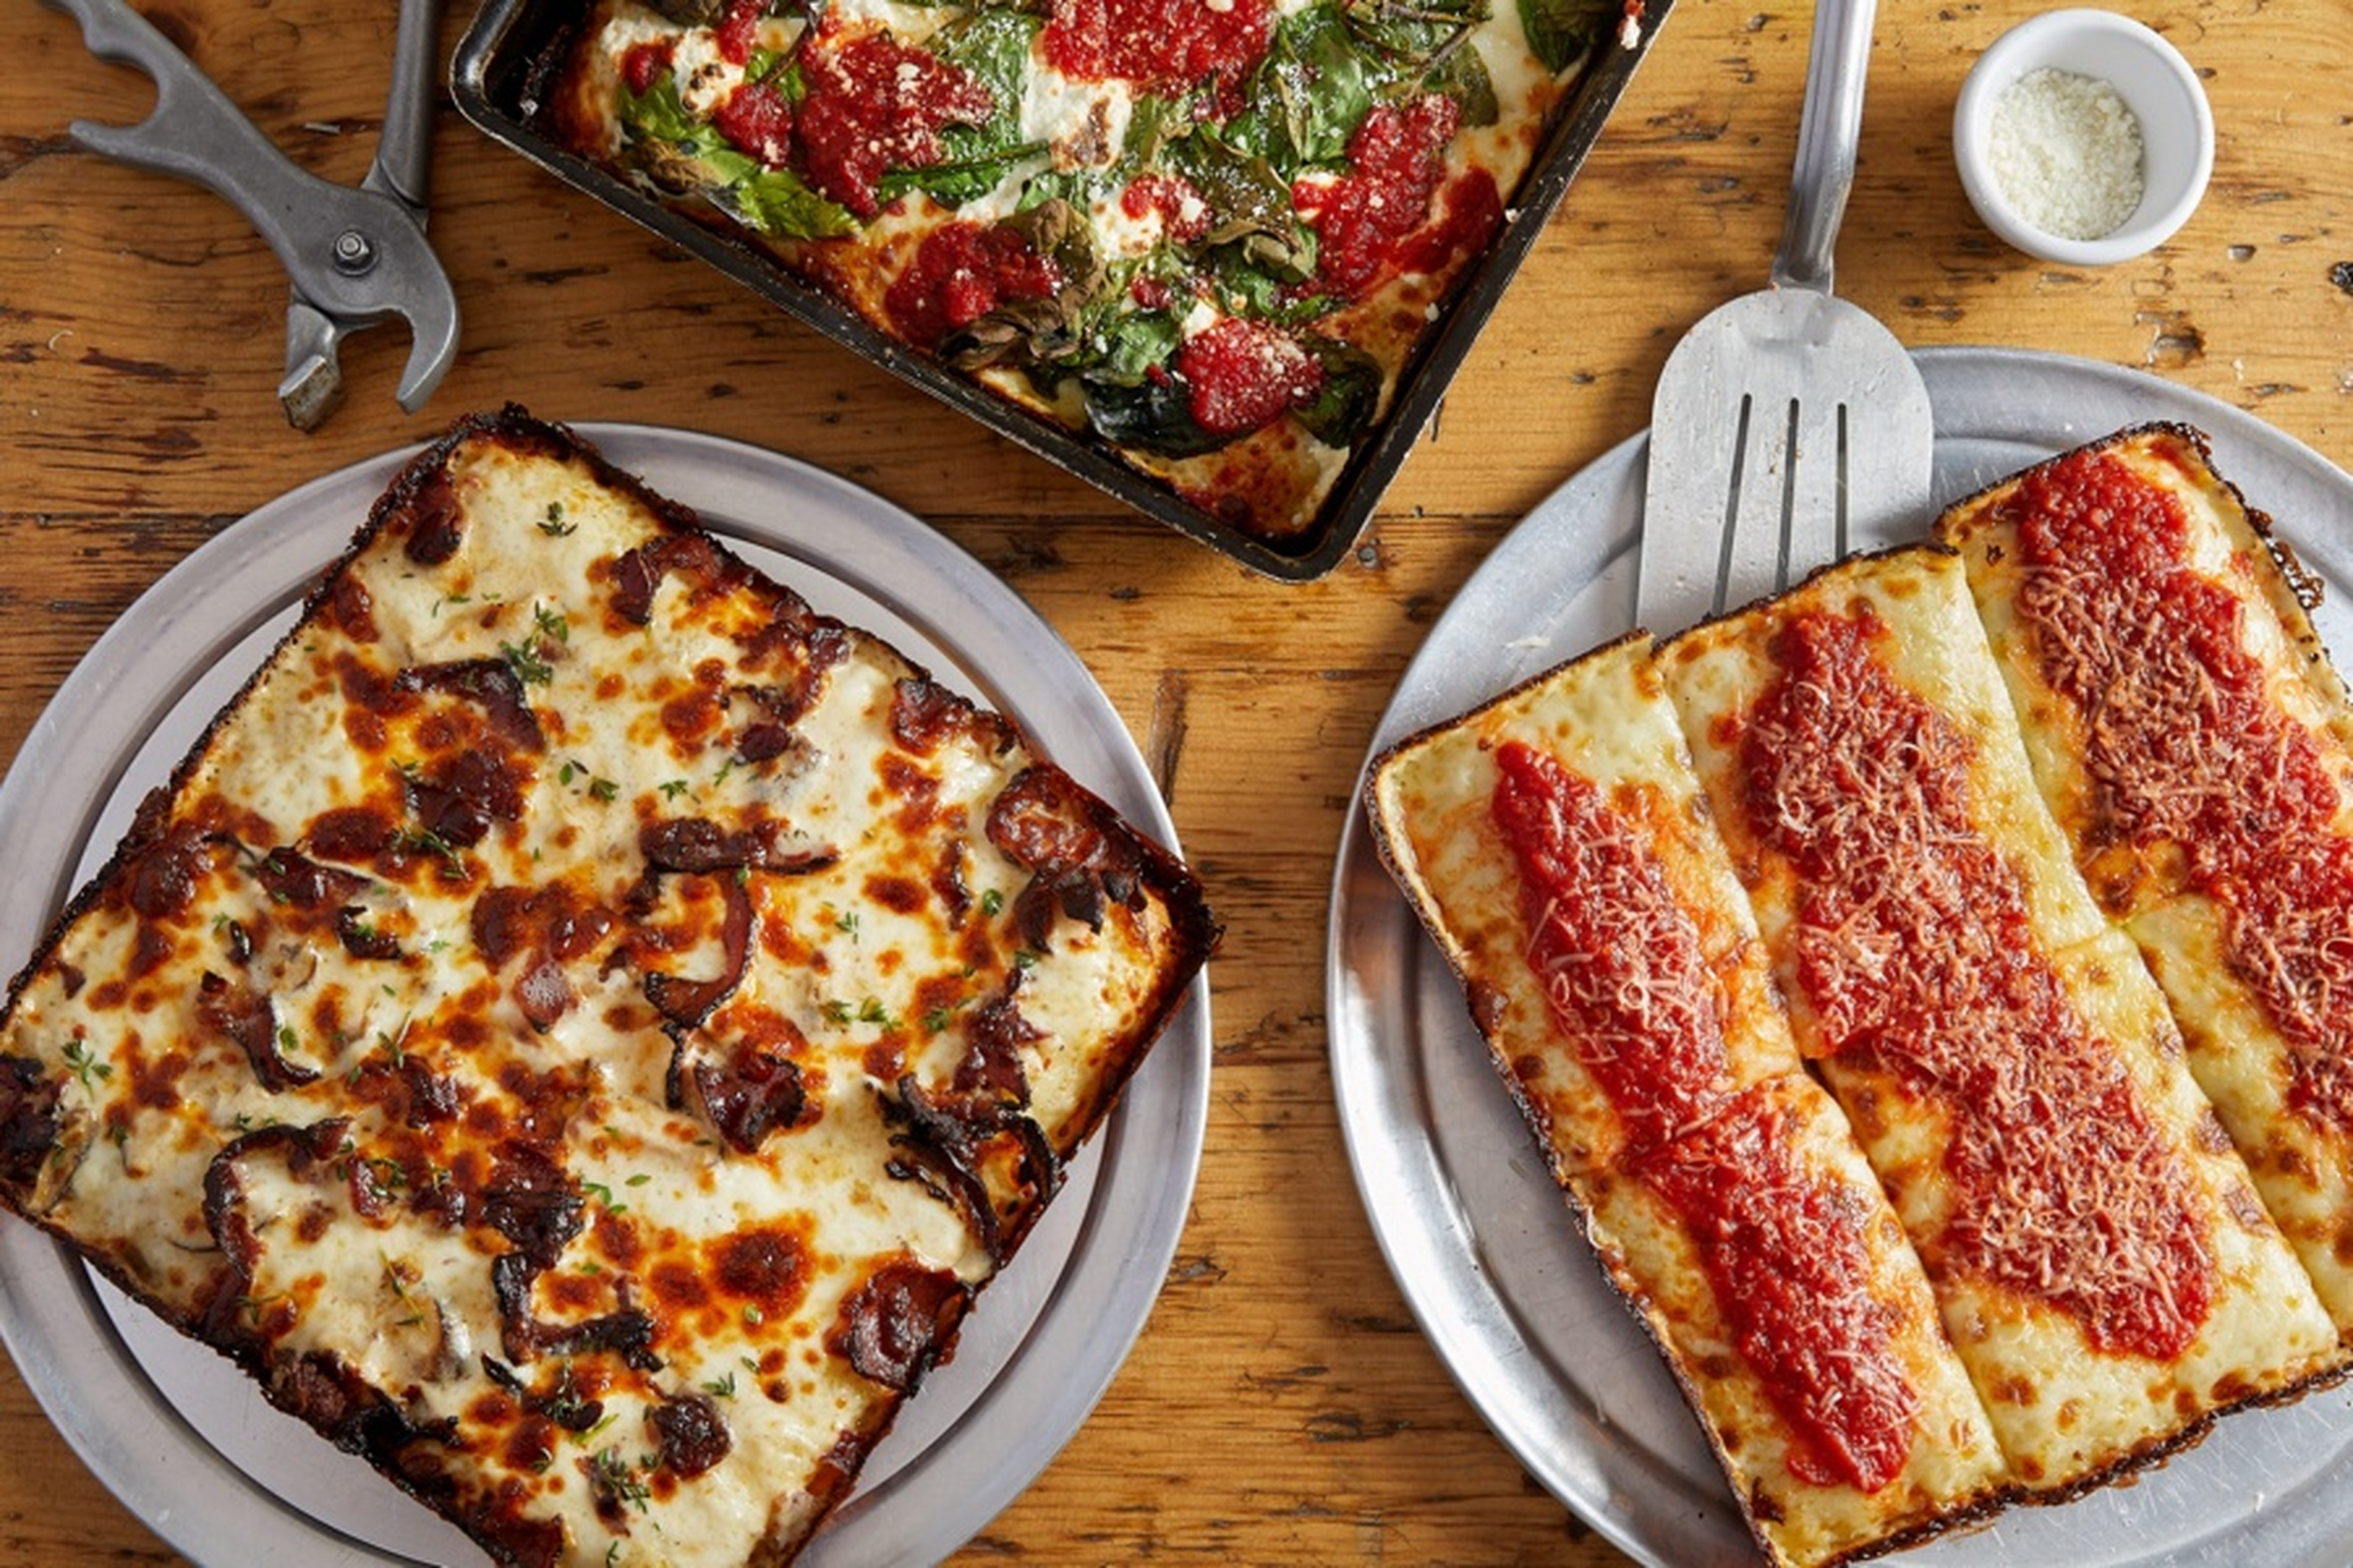 The 10 Best Pizza Places In Philadelphia - Philadelphia - The Infatuation